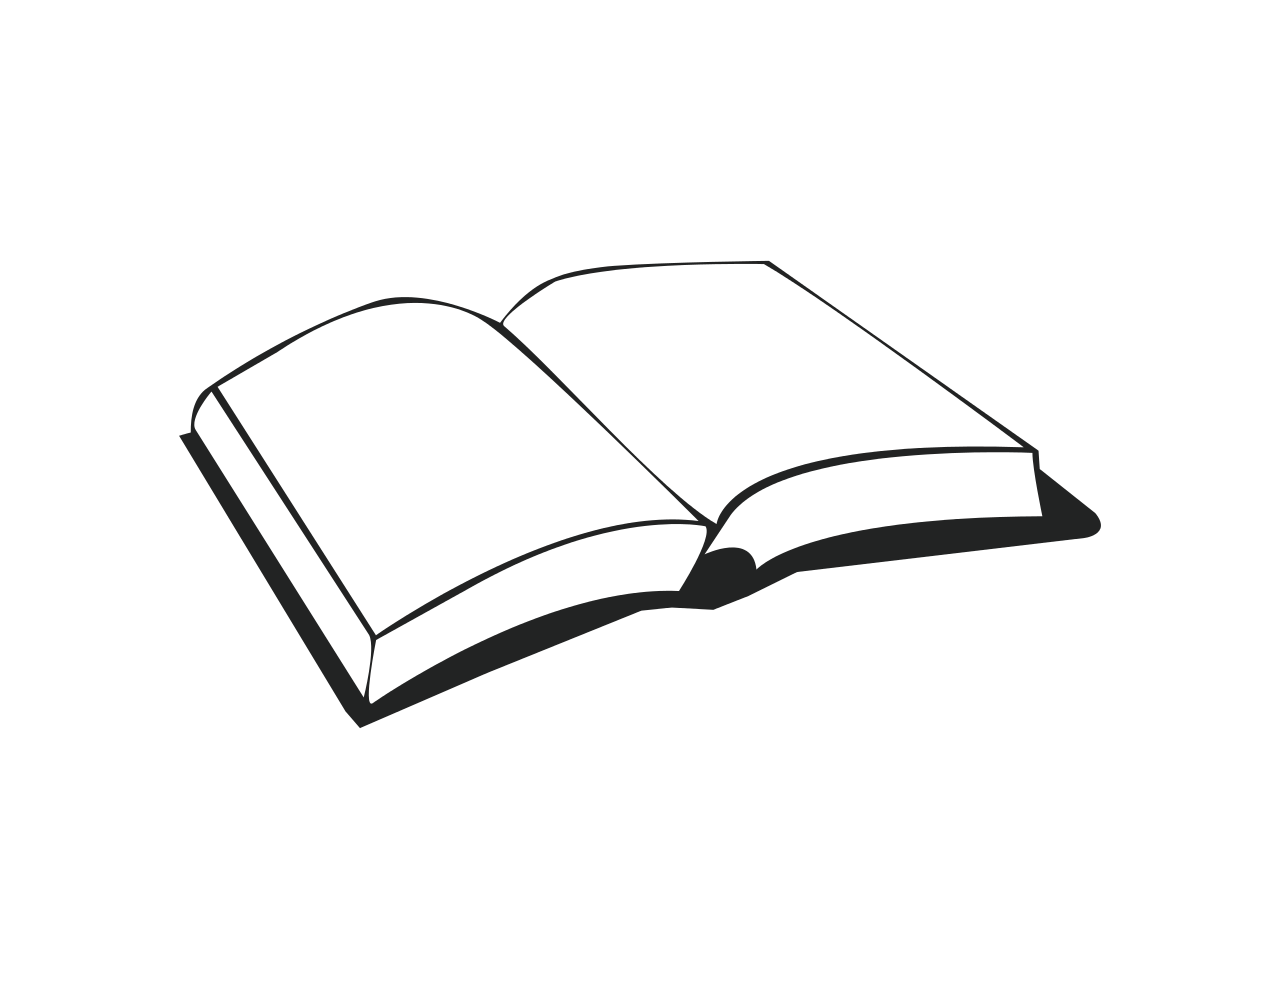 Open book clipart black and white banner royalty free File:Book SVG.svg - Wikimedia Commons banner royalty free